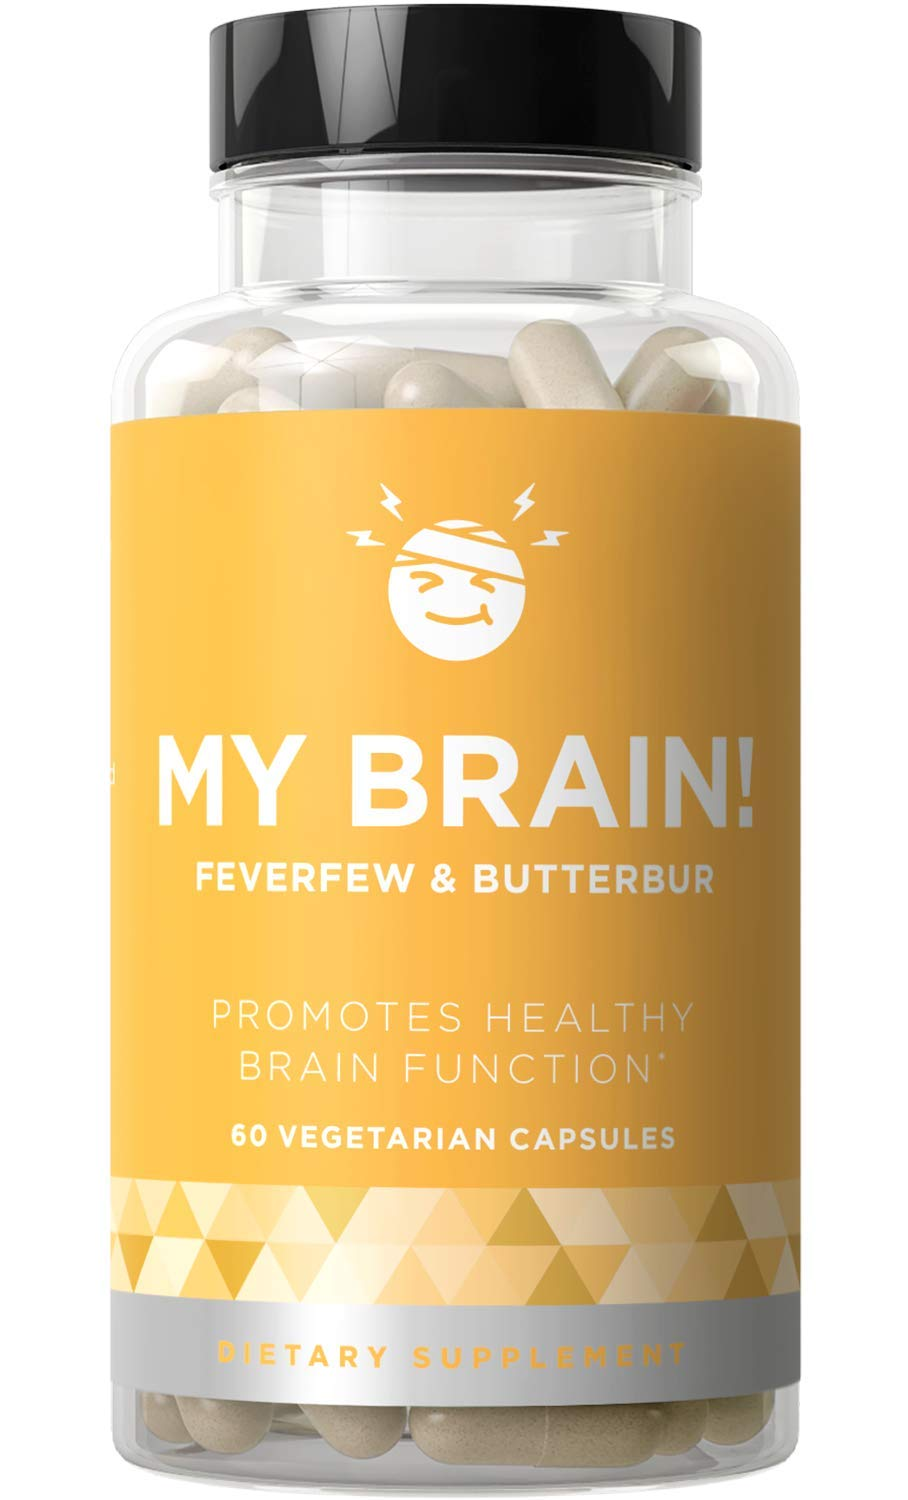 My Brain! Natural Headache Vitamins - Healthy Brain Function, Ease Your Mind, Open & Clear Head Relief - Strong Potency Magnesium, Butterbur, Feverfew - 60 Vegetarian Soft Capsules by Eu Natural